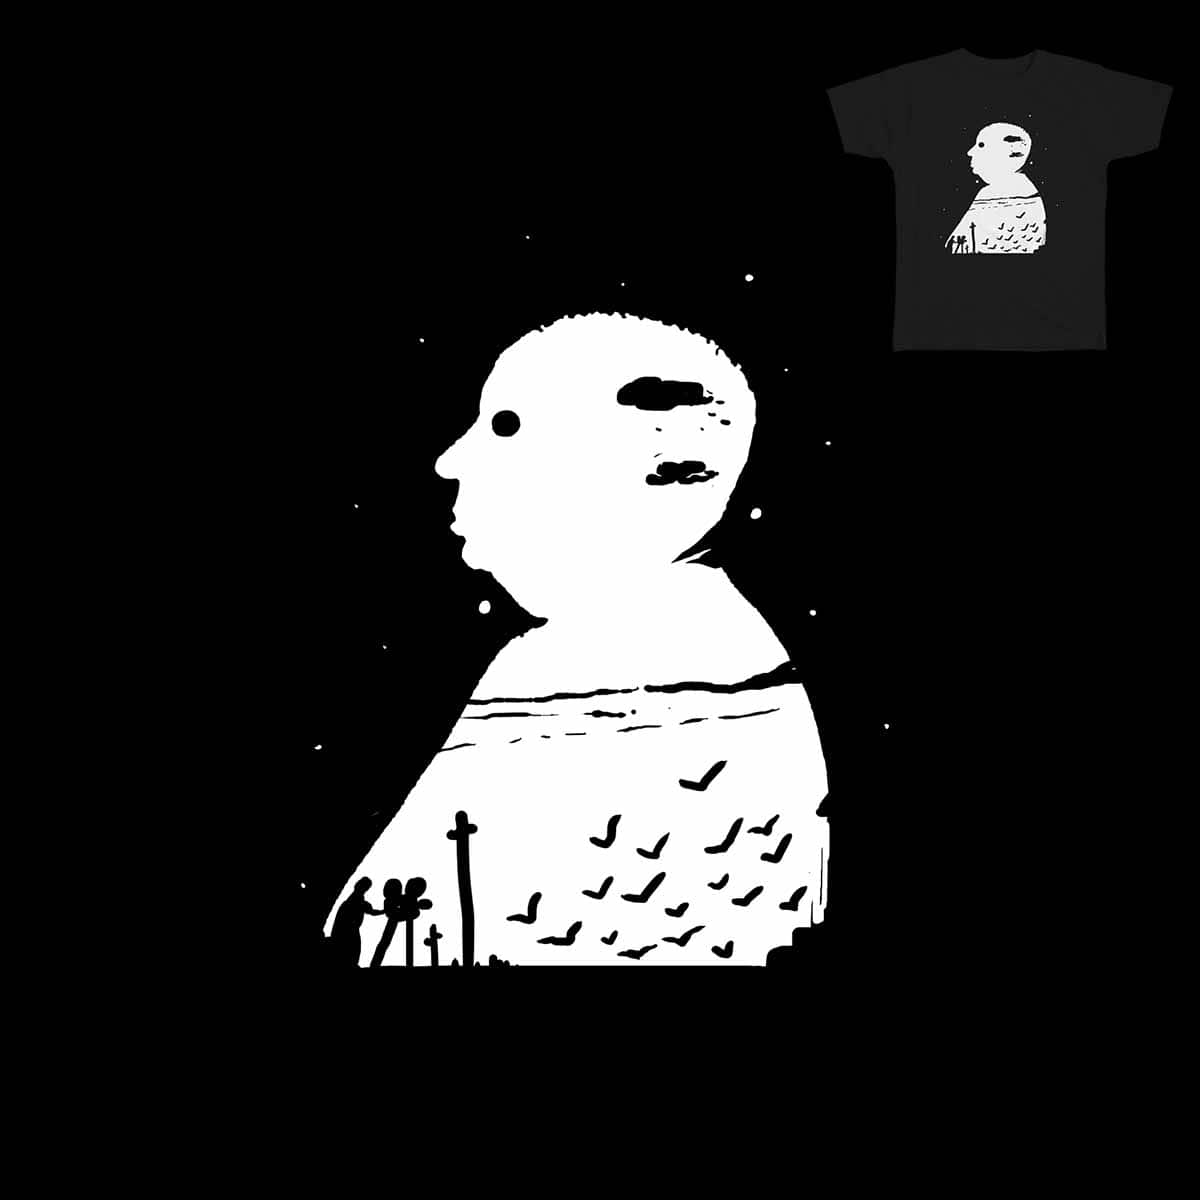 Hitchcockian Nightmare by Thomas Orrow on Threadless